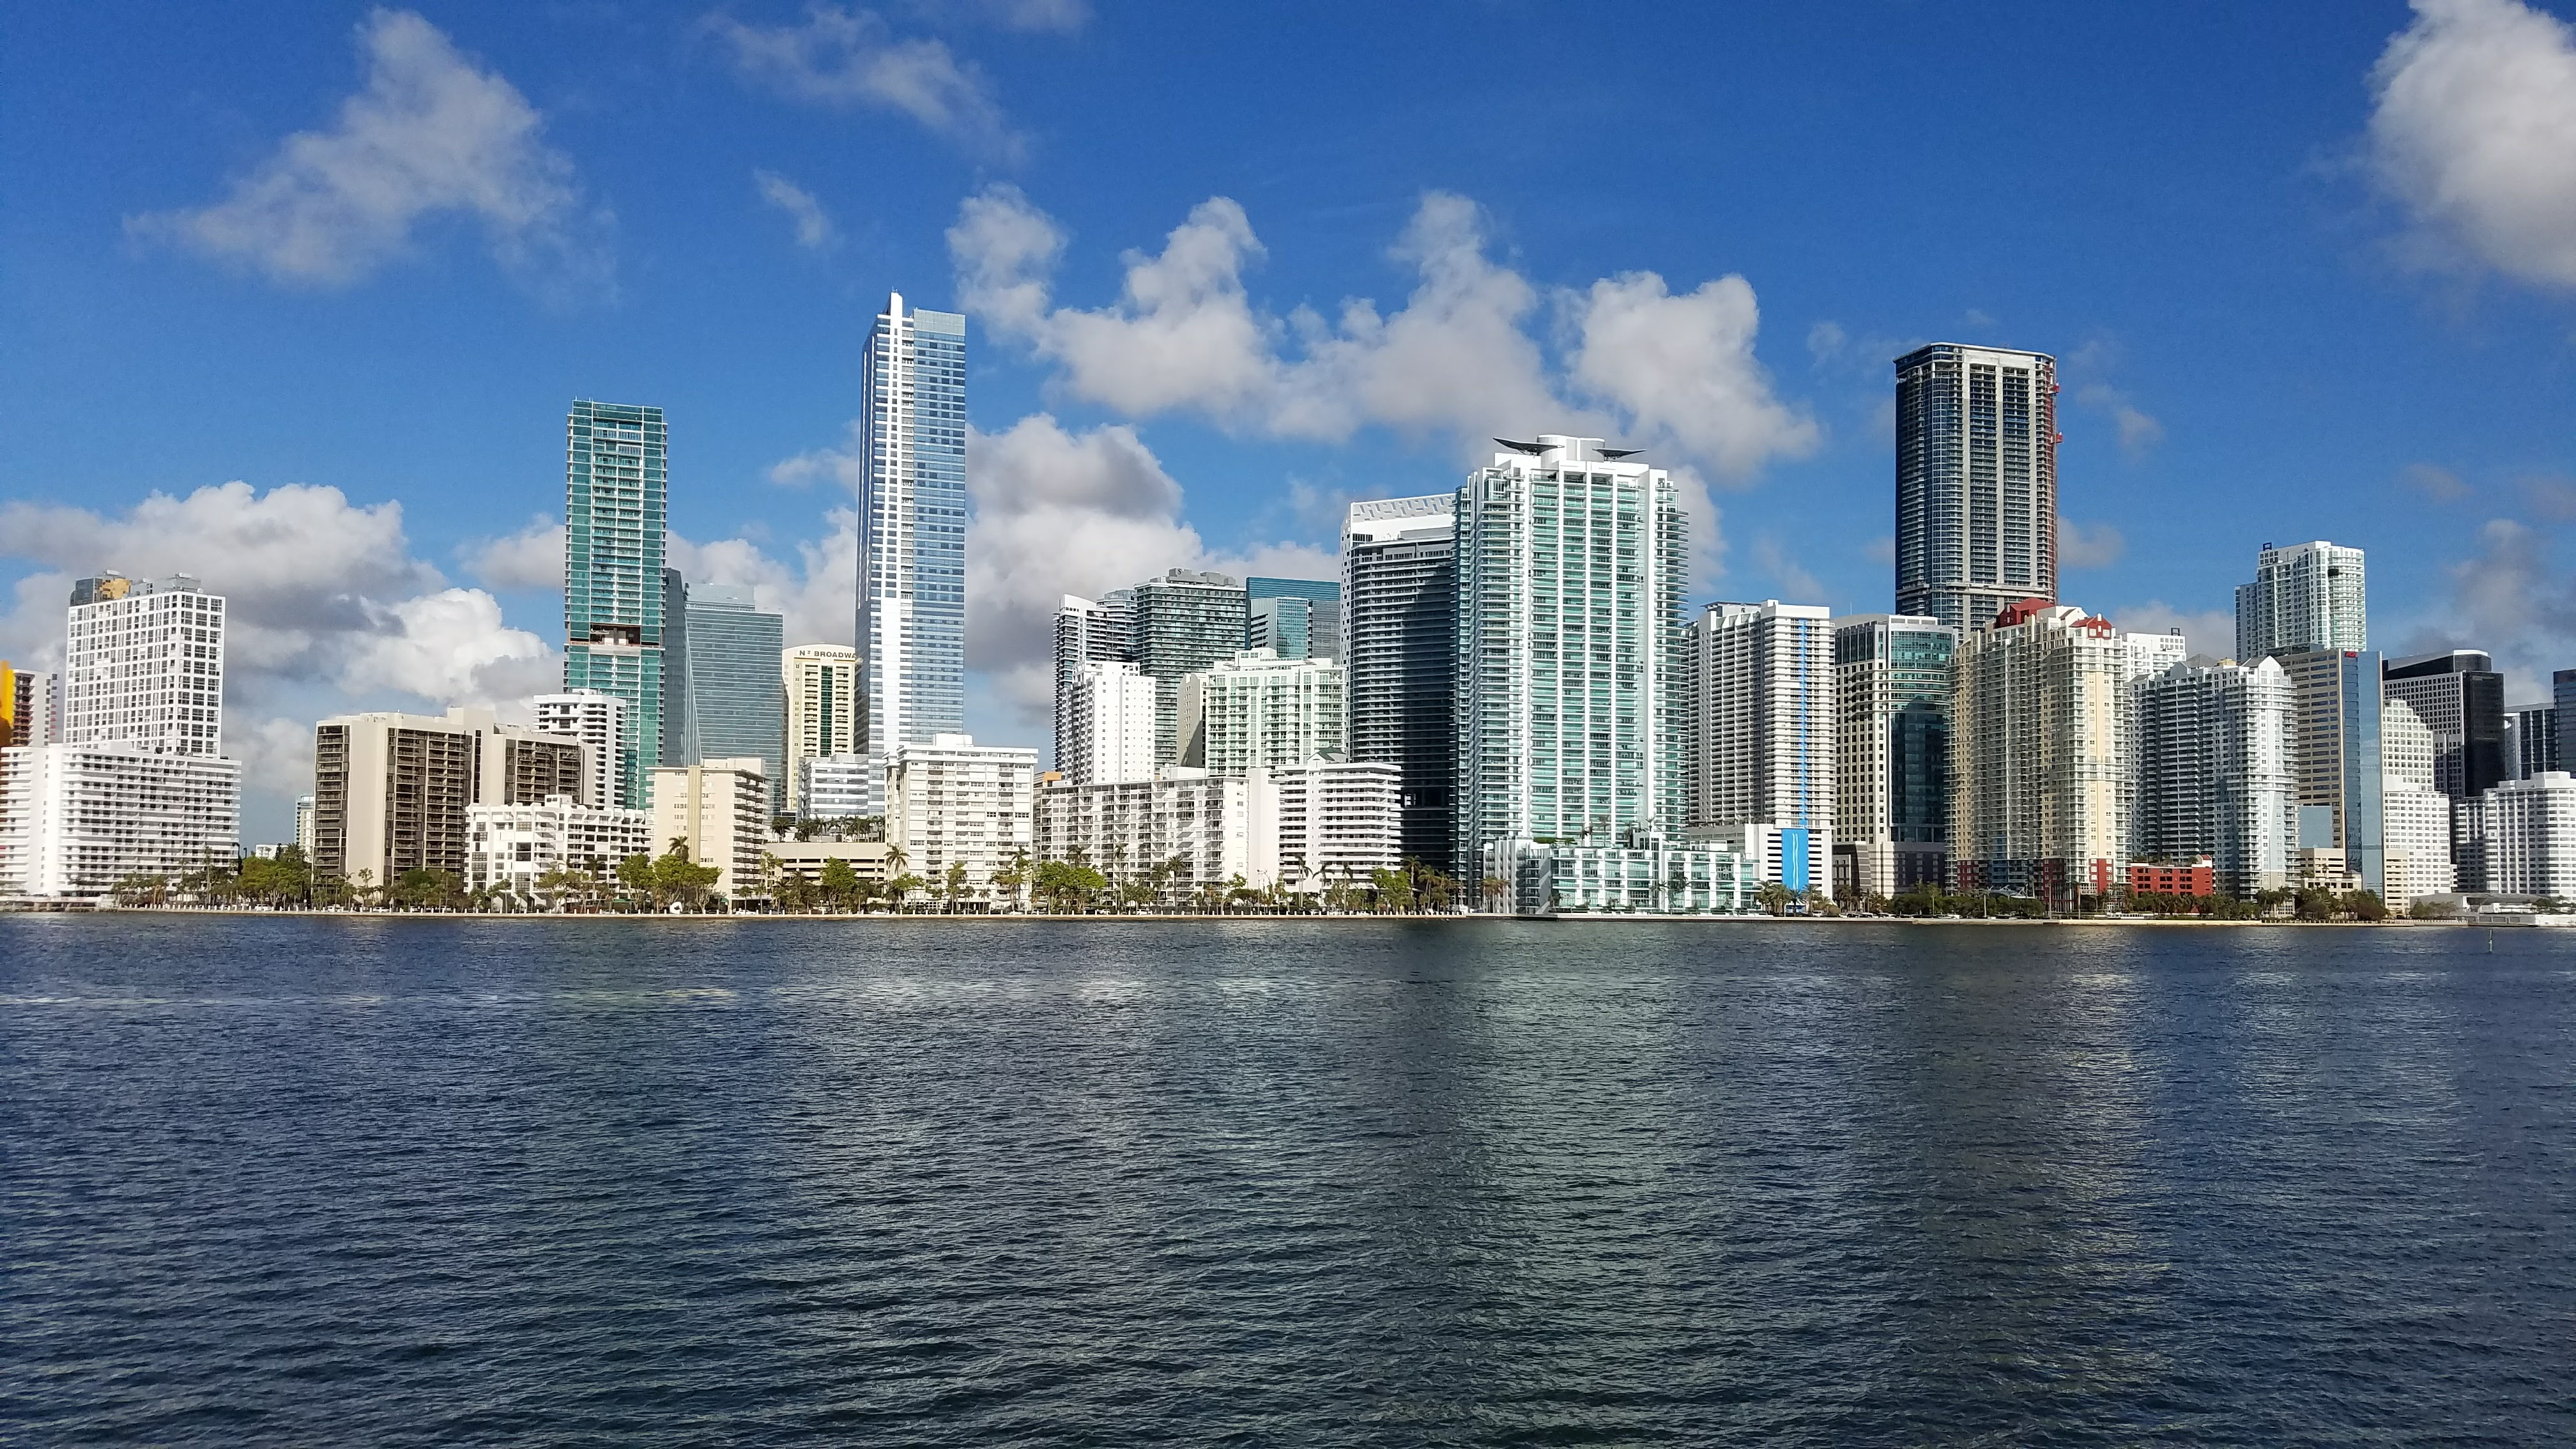 Miami from the R/V Walton Smith. Image credit: NOAA